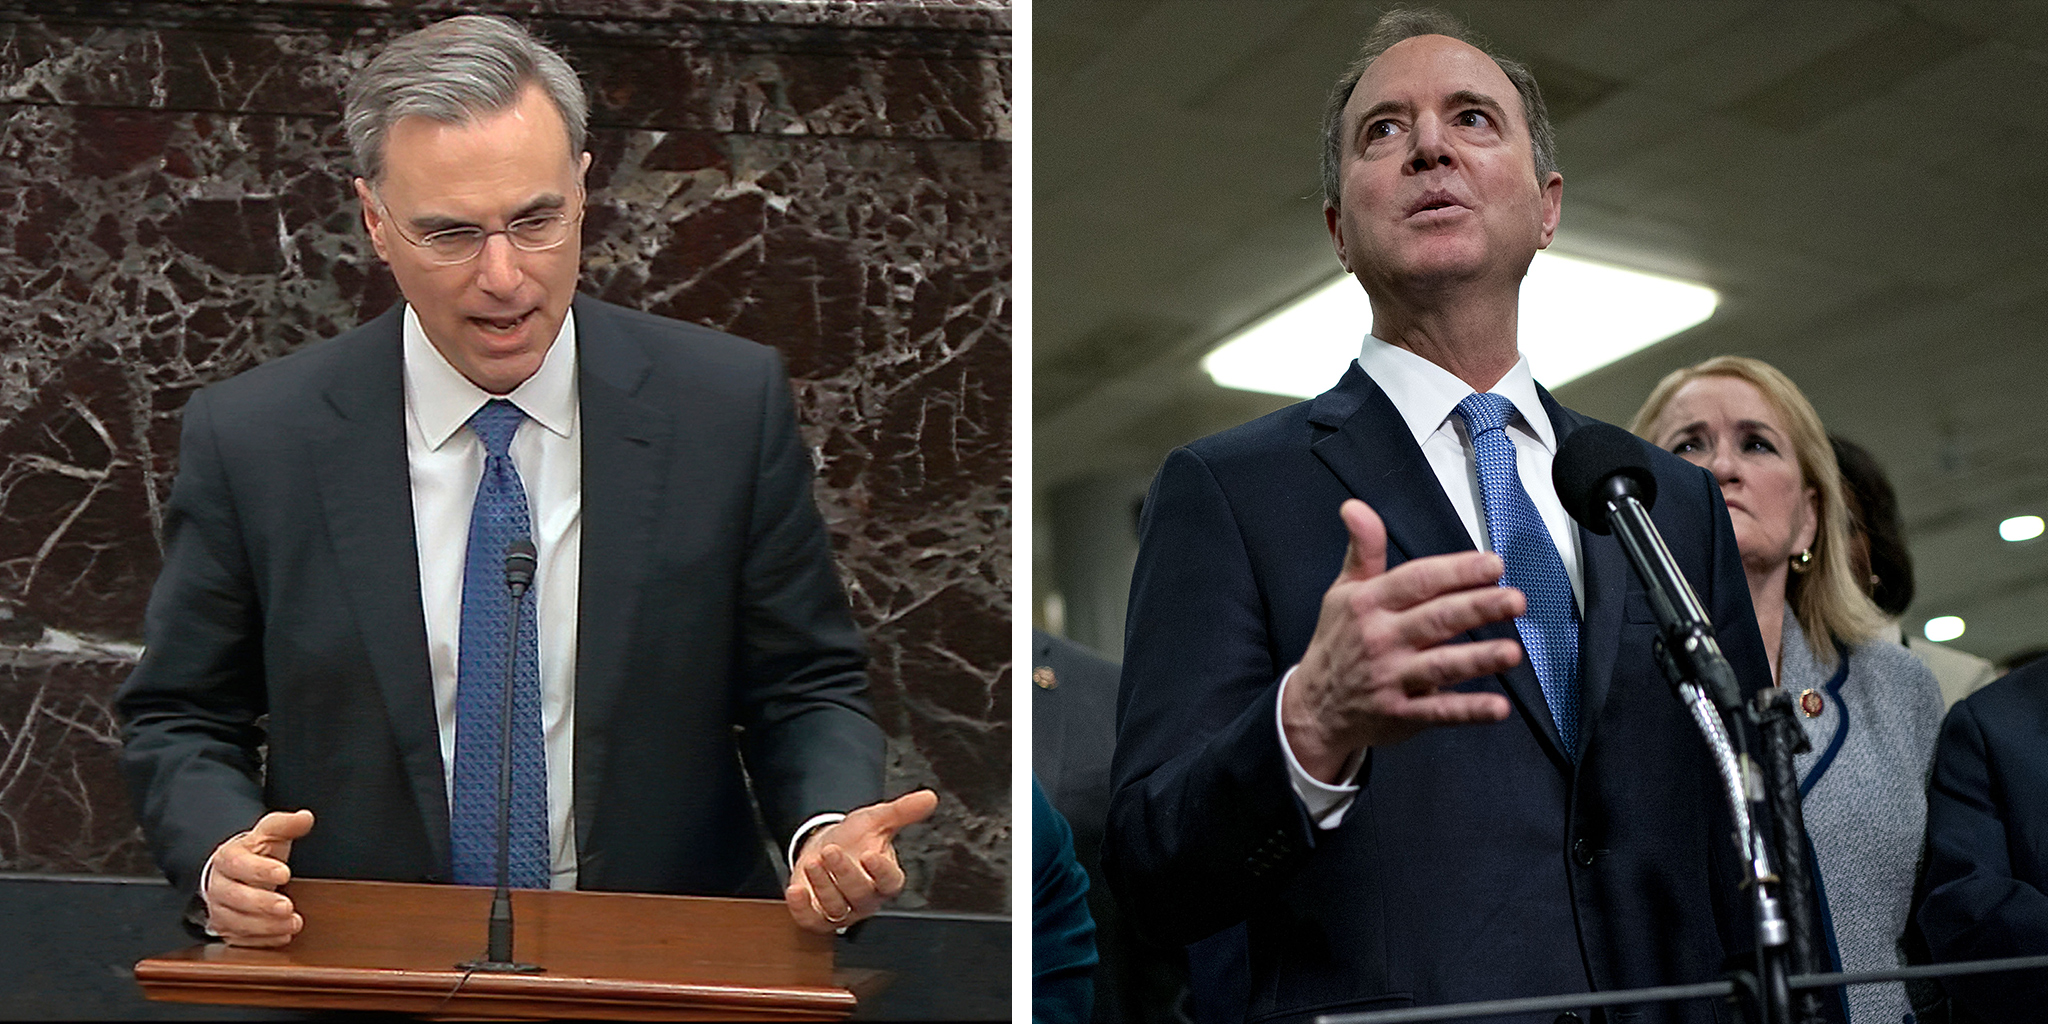 White House counsel Pat Cipollone and Representative Adam Schiff